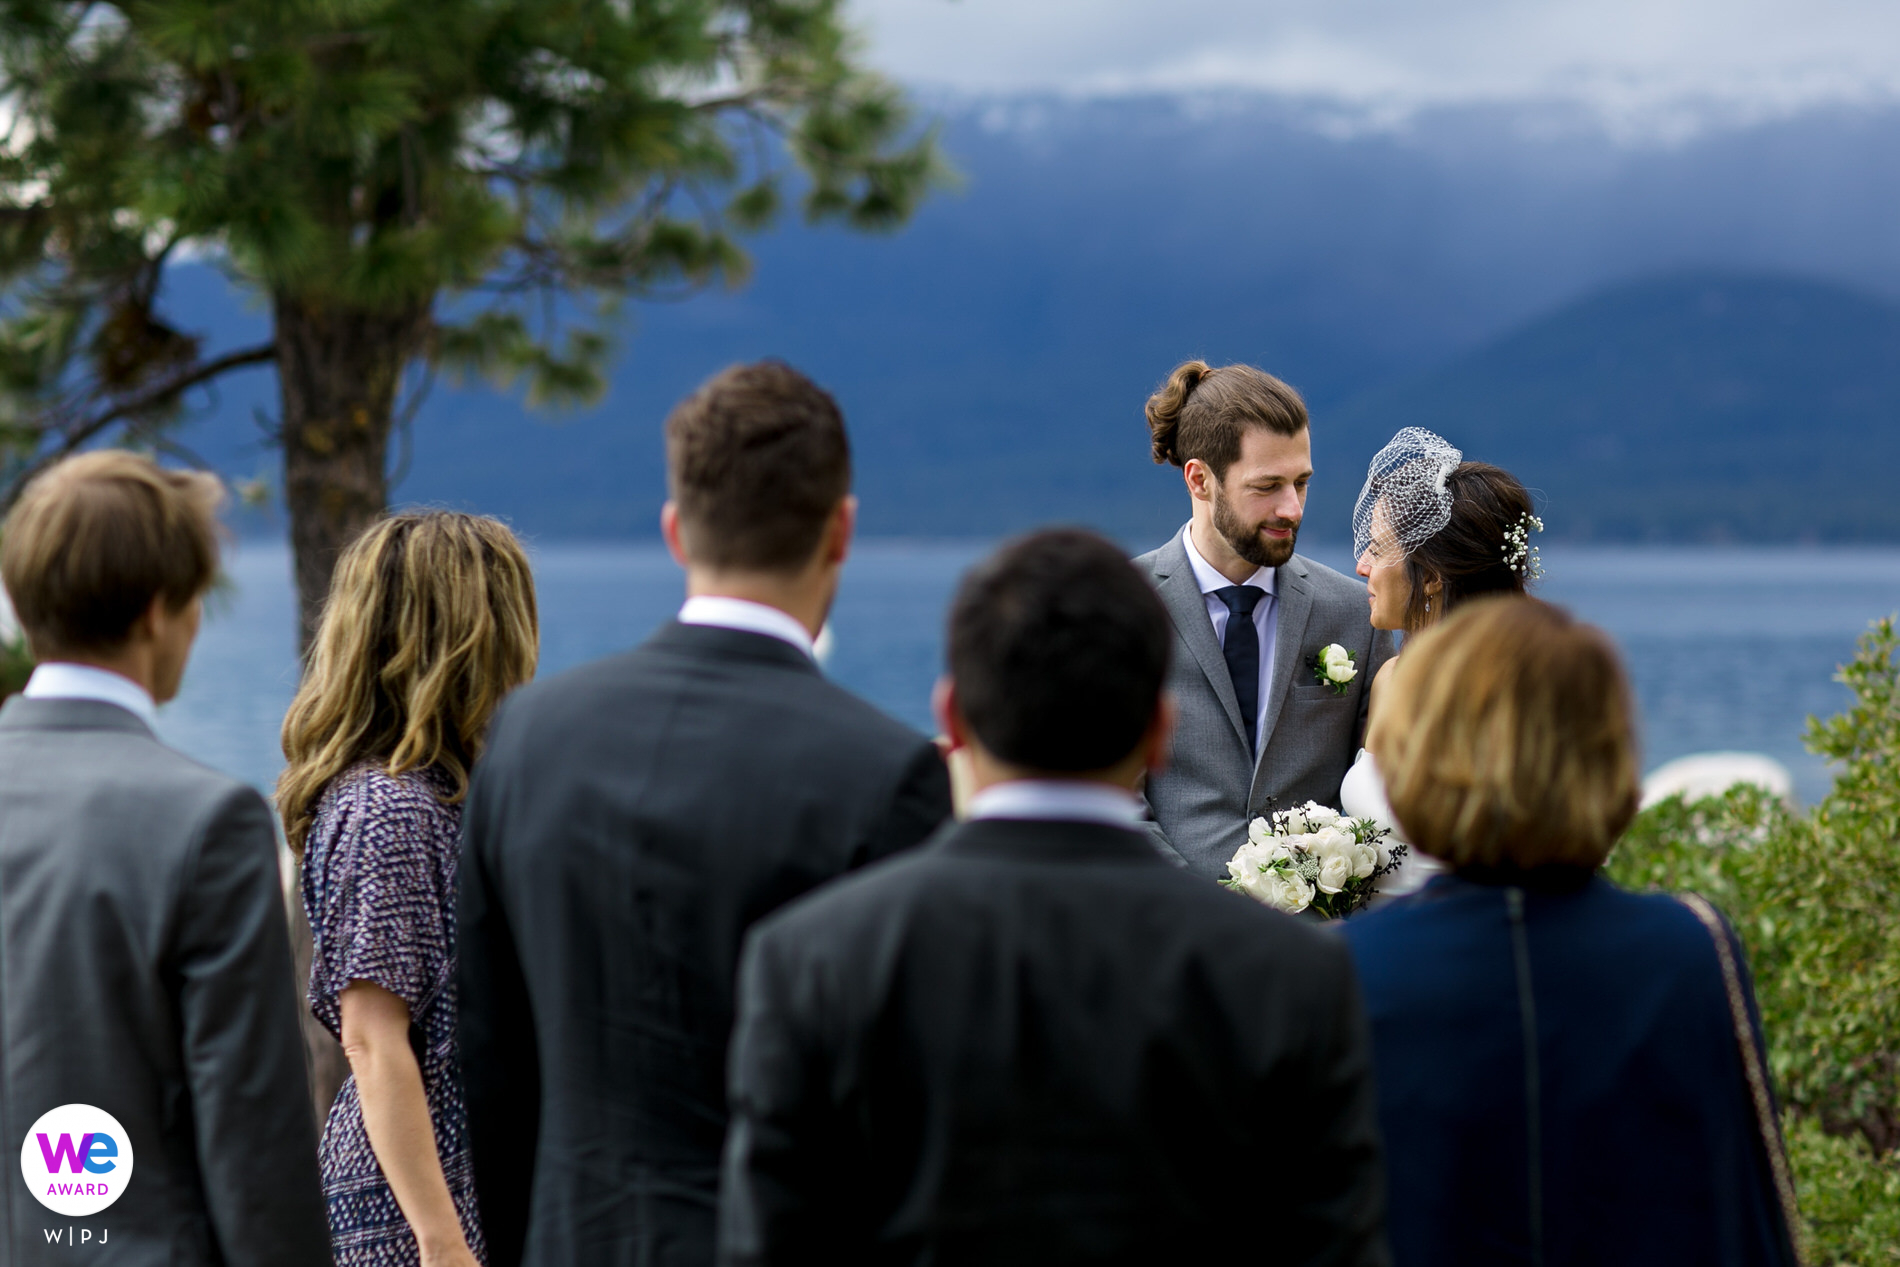 Nevada State Park Elopement Images | The groom and bride look at one another during their small wedding ceremony. Lake Tahoe is in the background. The rain clouds are moving closer and the light on the lake is becoming more dramatic.